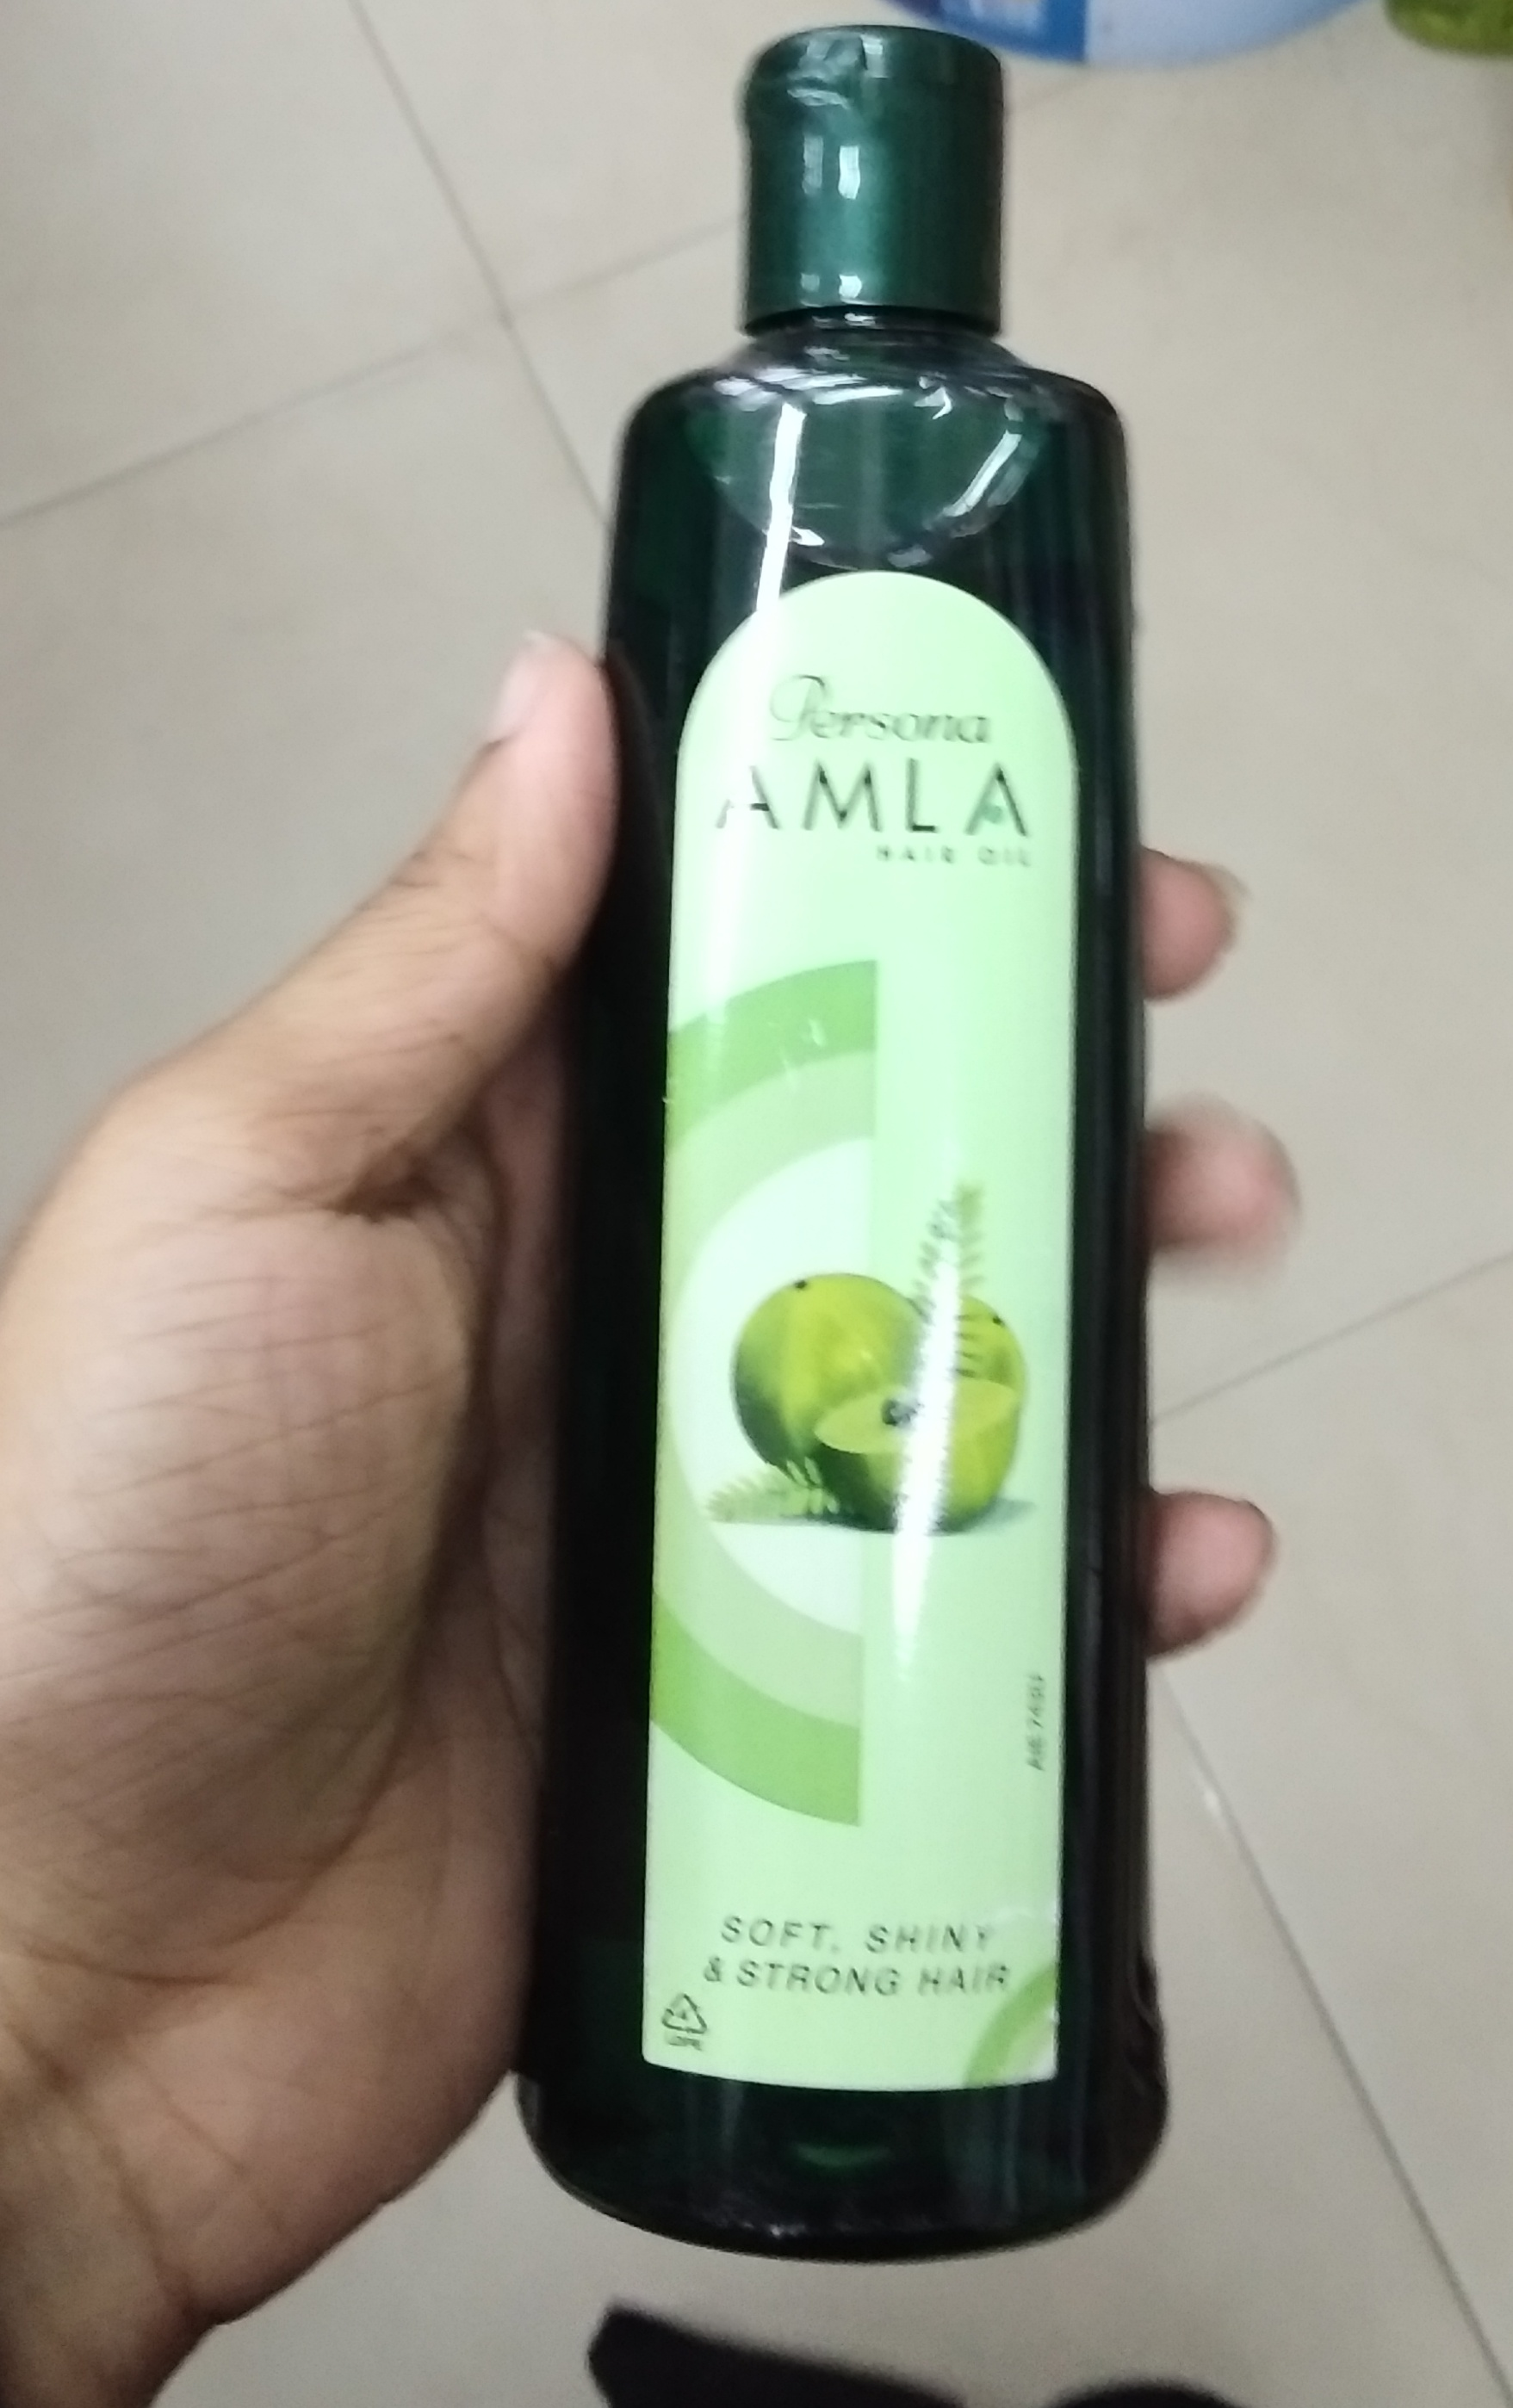 Amway Persona Amla Hair Oil pic 2-Not worthy-By Nasreen